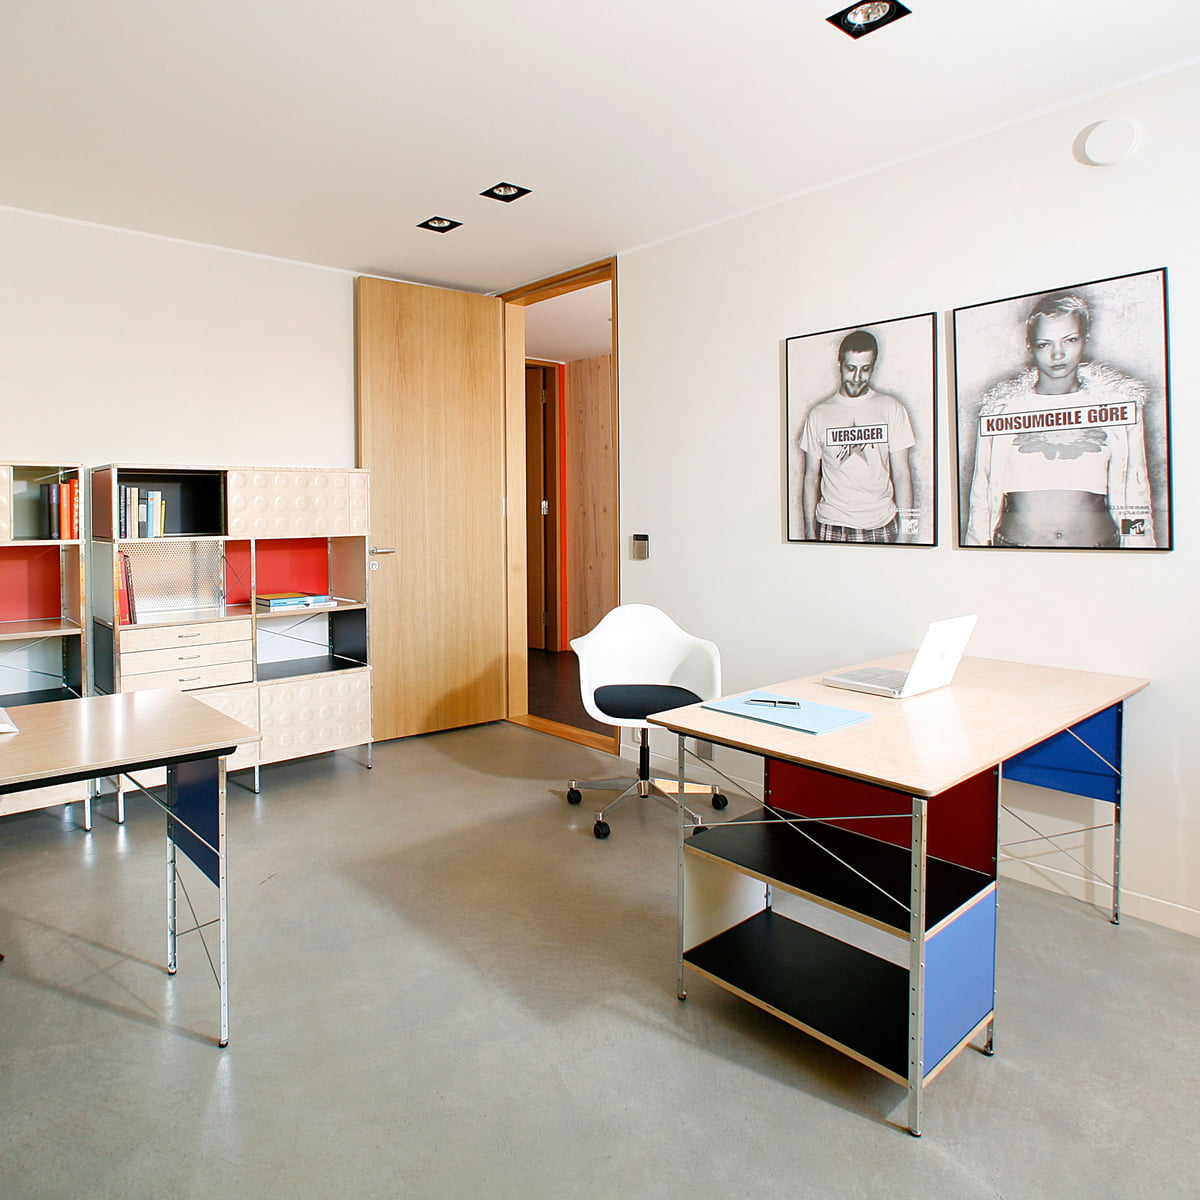 eames desk unit by vitra at the interior shop - the eames desk and storage unit by vitra